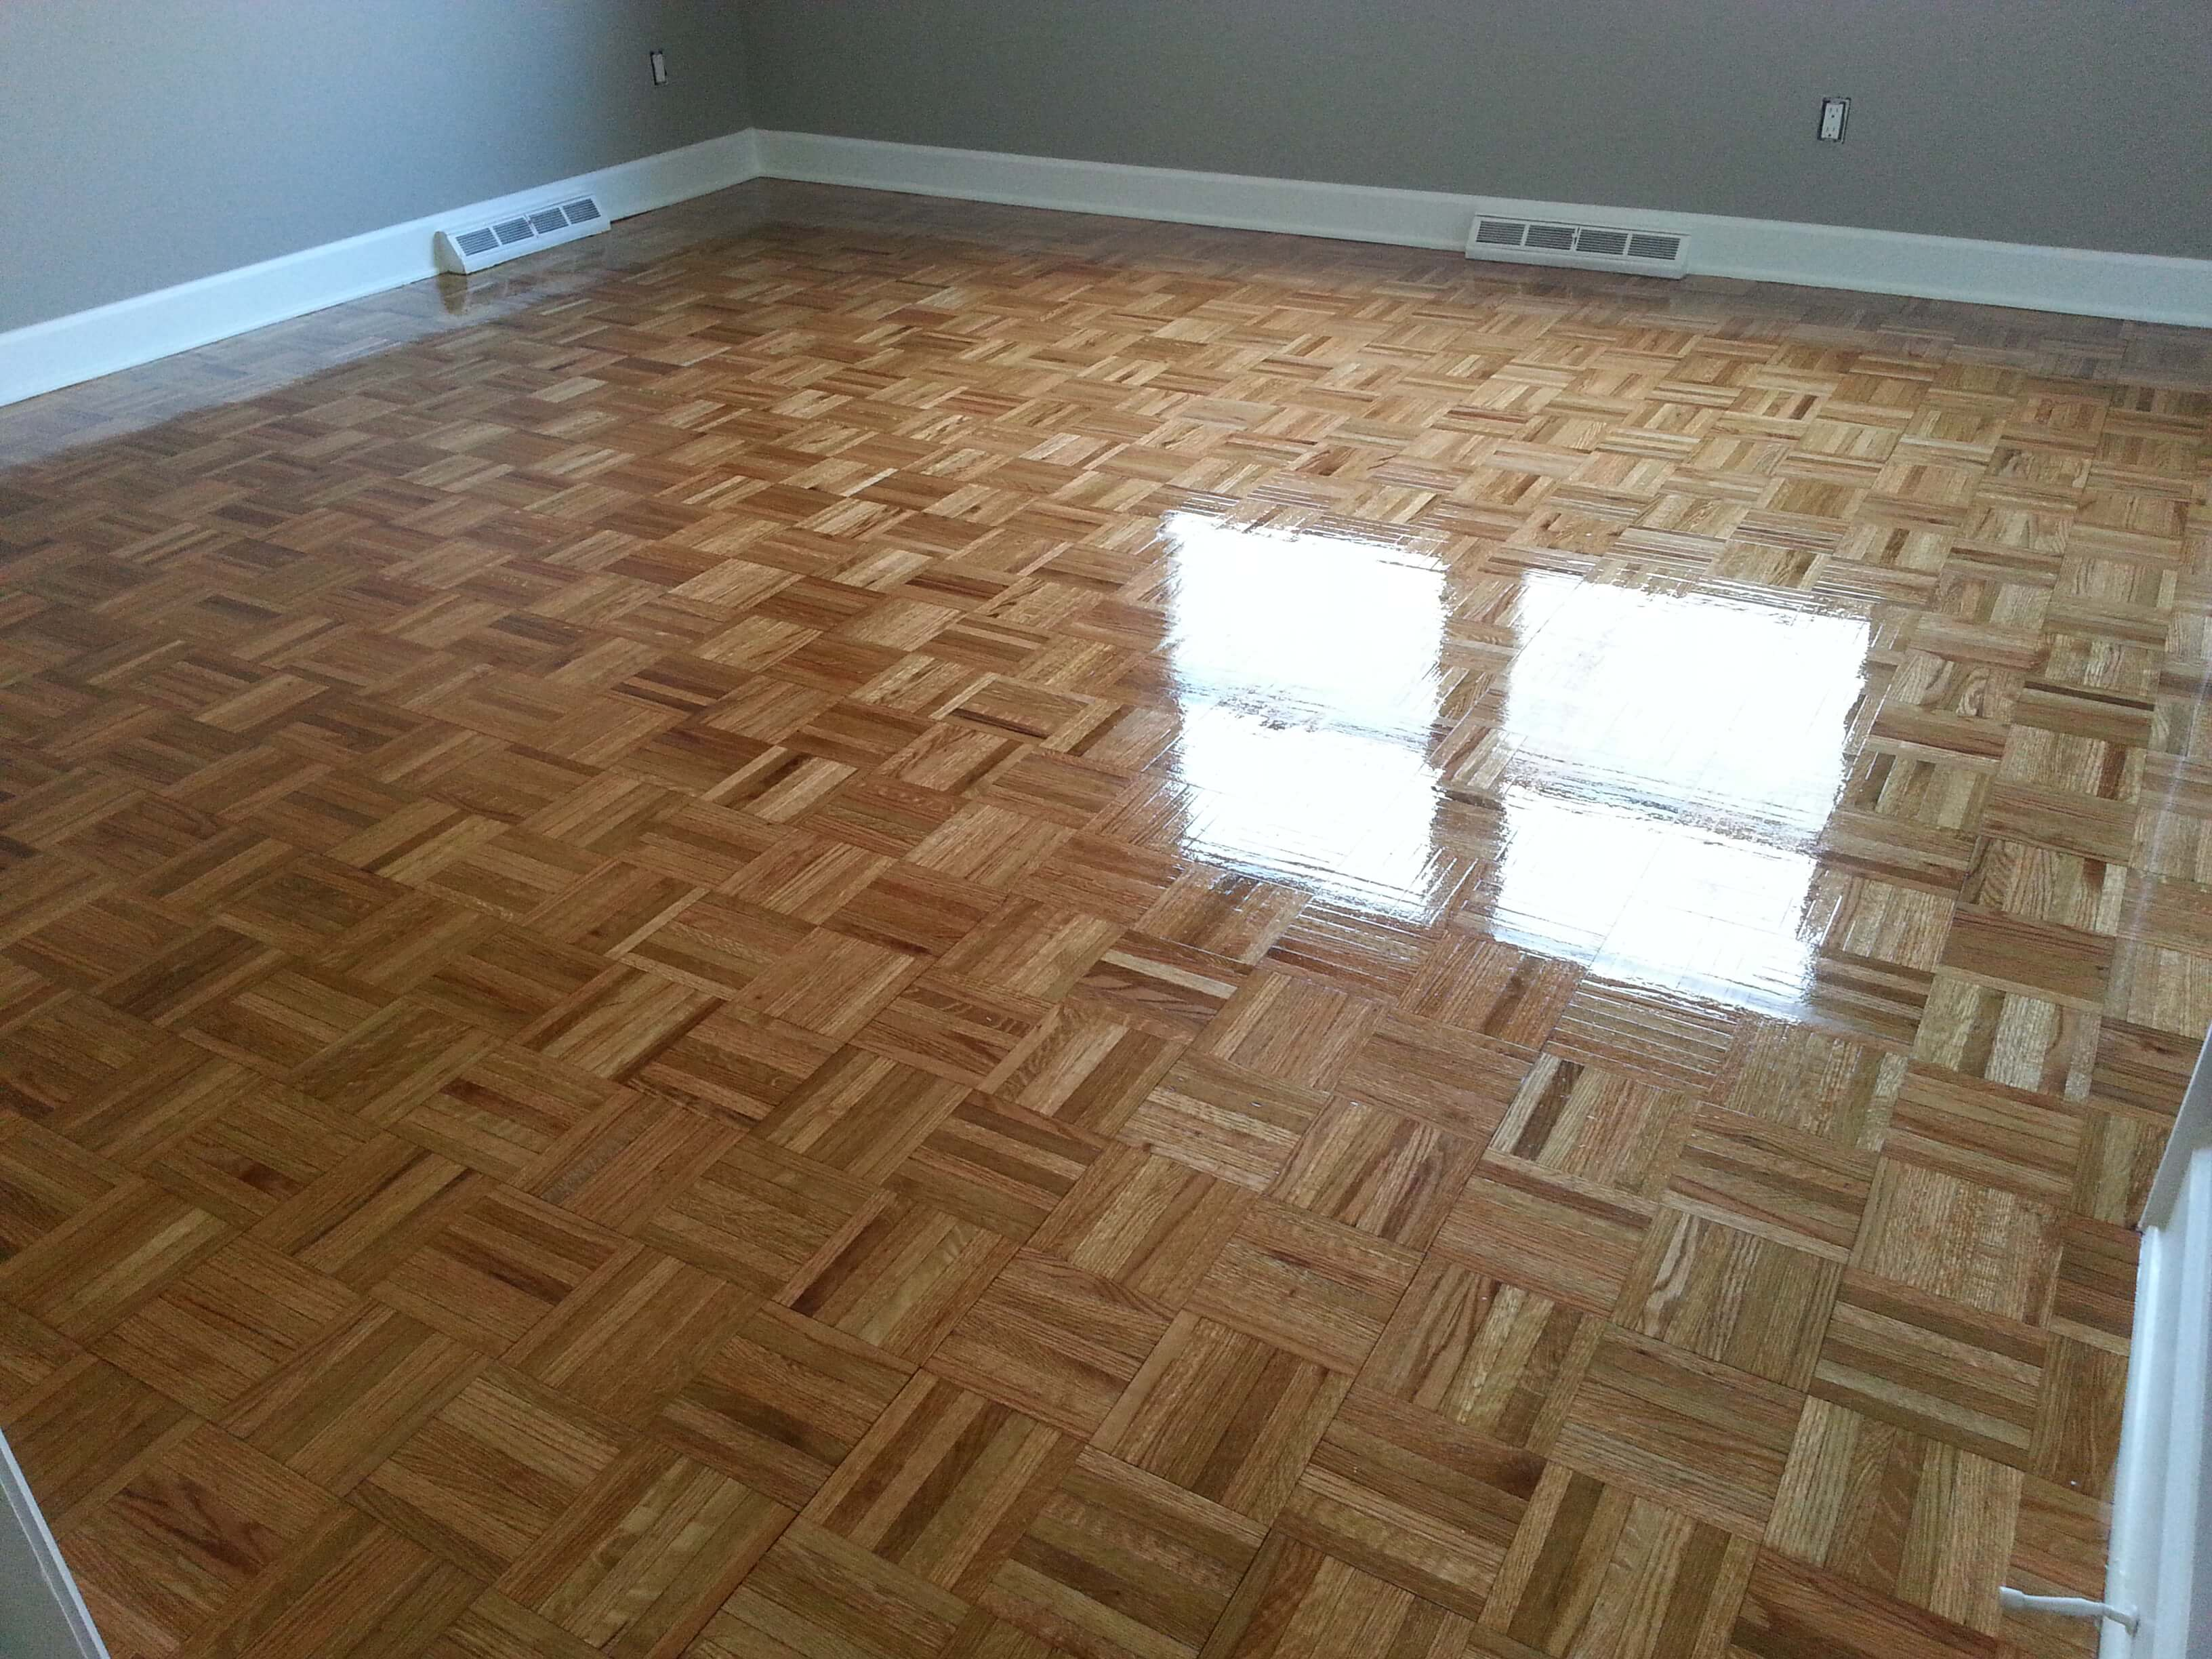 a resurfaced parquet hardwood floor